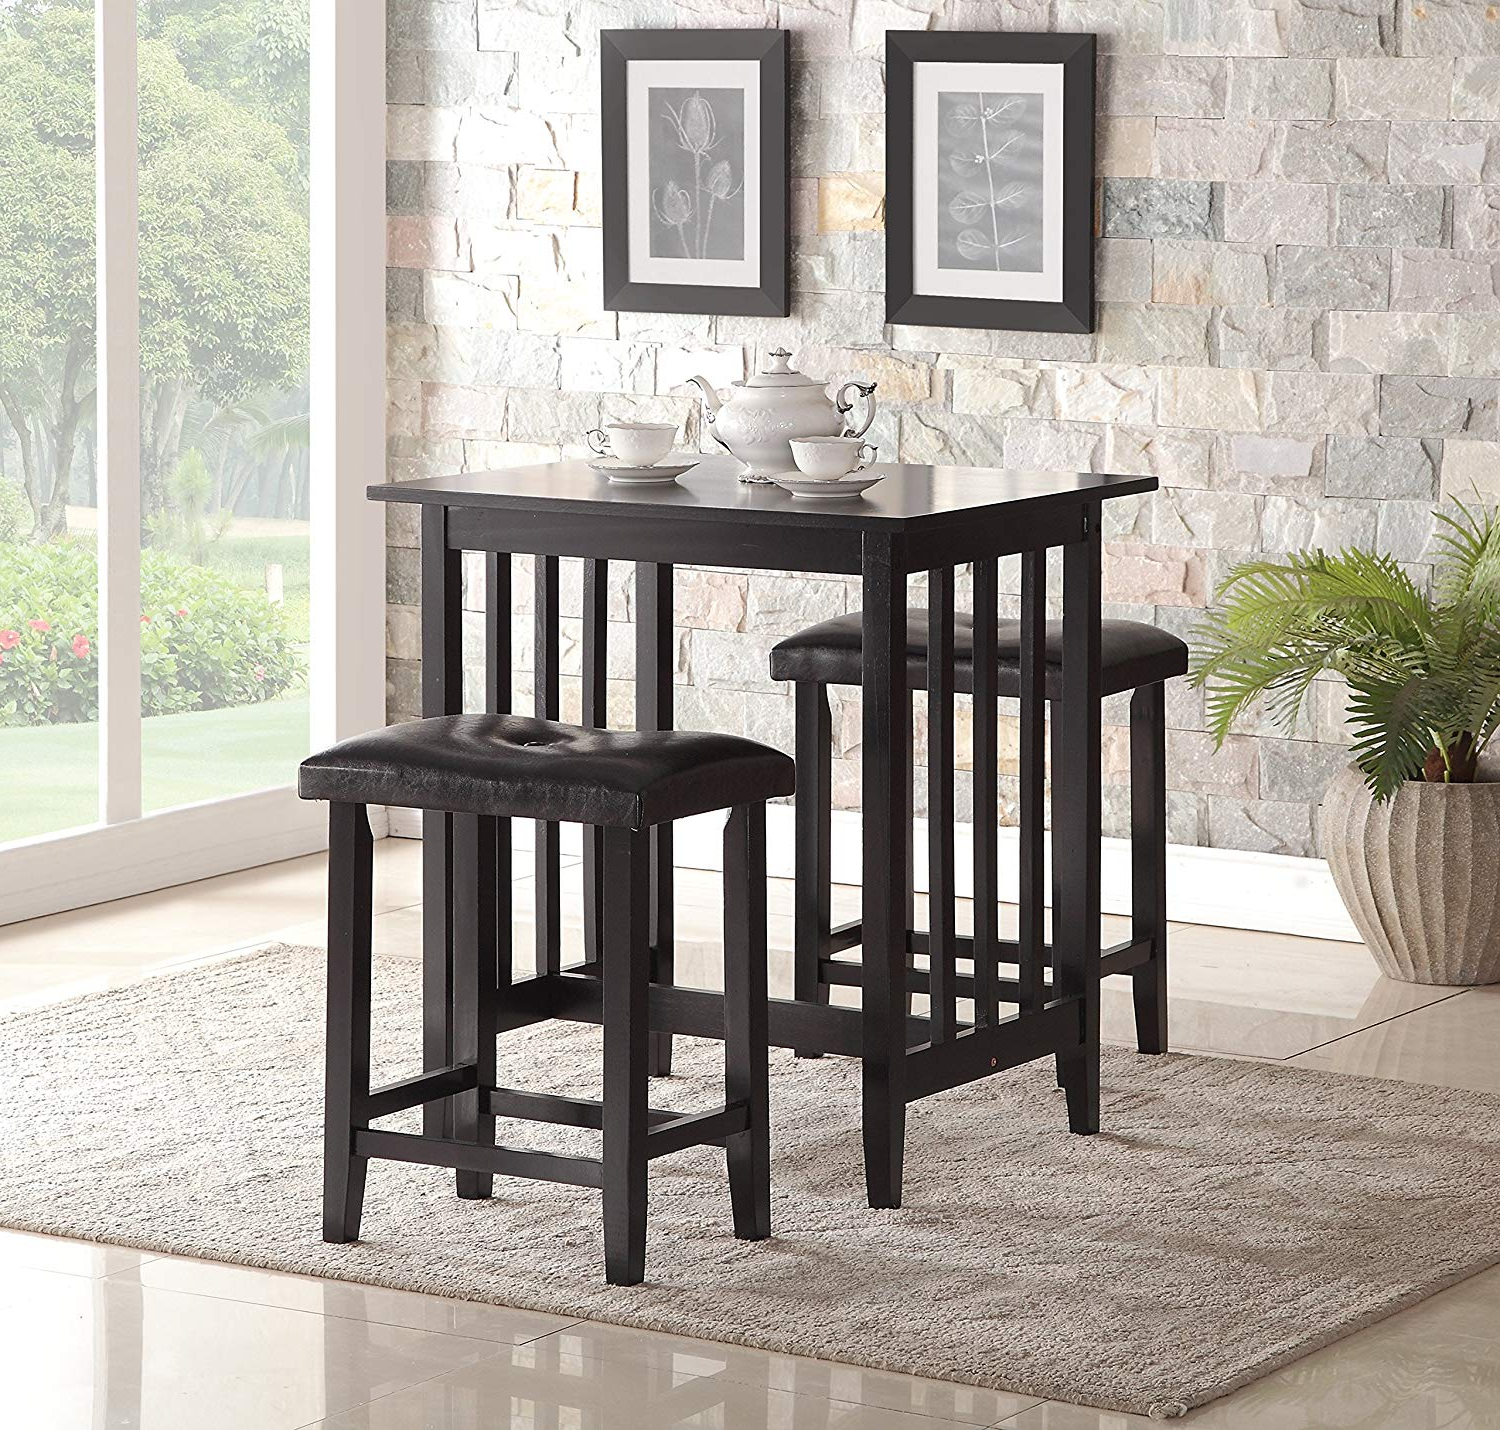 Moorehead 3 Piece Counter Height Dining Sets Intended For Newest Amazon – Roundhill Furniture 3 Piece Counter Height Dining Set (View 10 of 25)